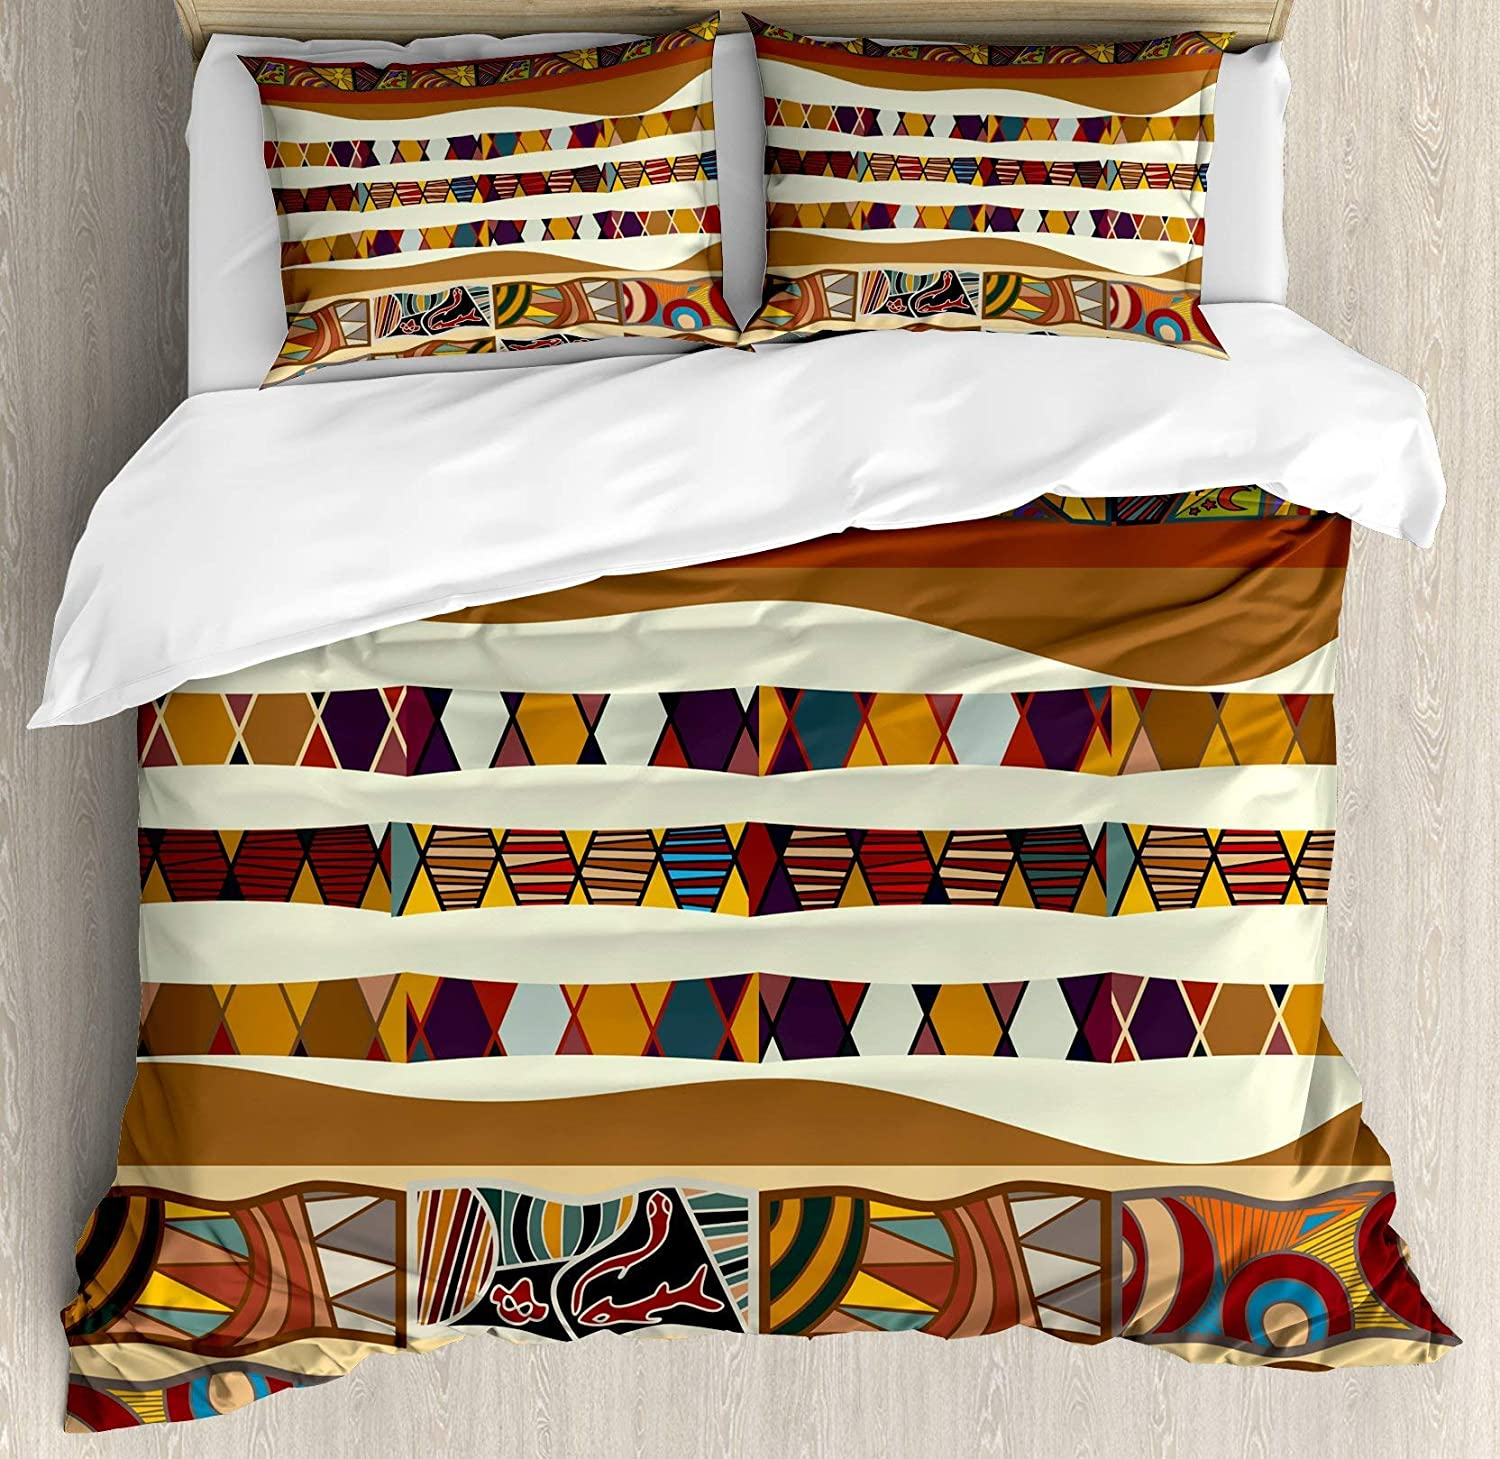 BULING Tribal 4pc Bedding Set King Size, Traditional African Folk with Cultural Featured Trippy Icons Boho Abstract Design Floral Lightweight Microfiber Duvet Cover Set, Multicolor